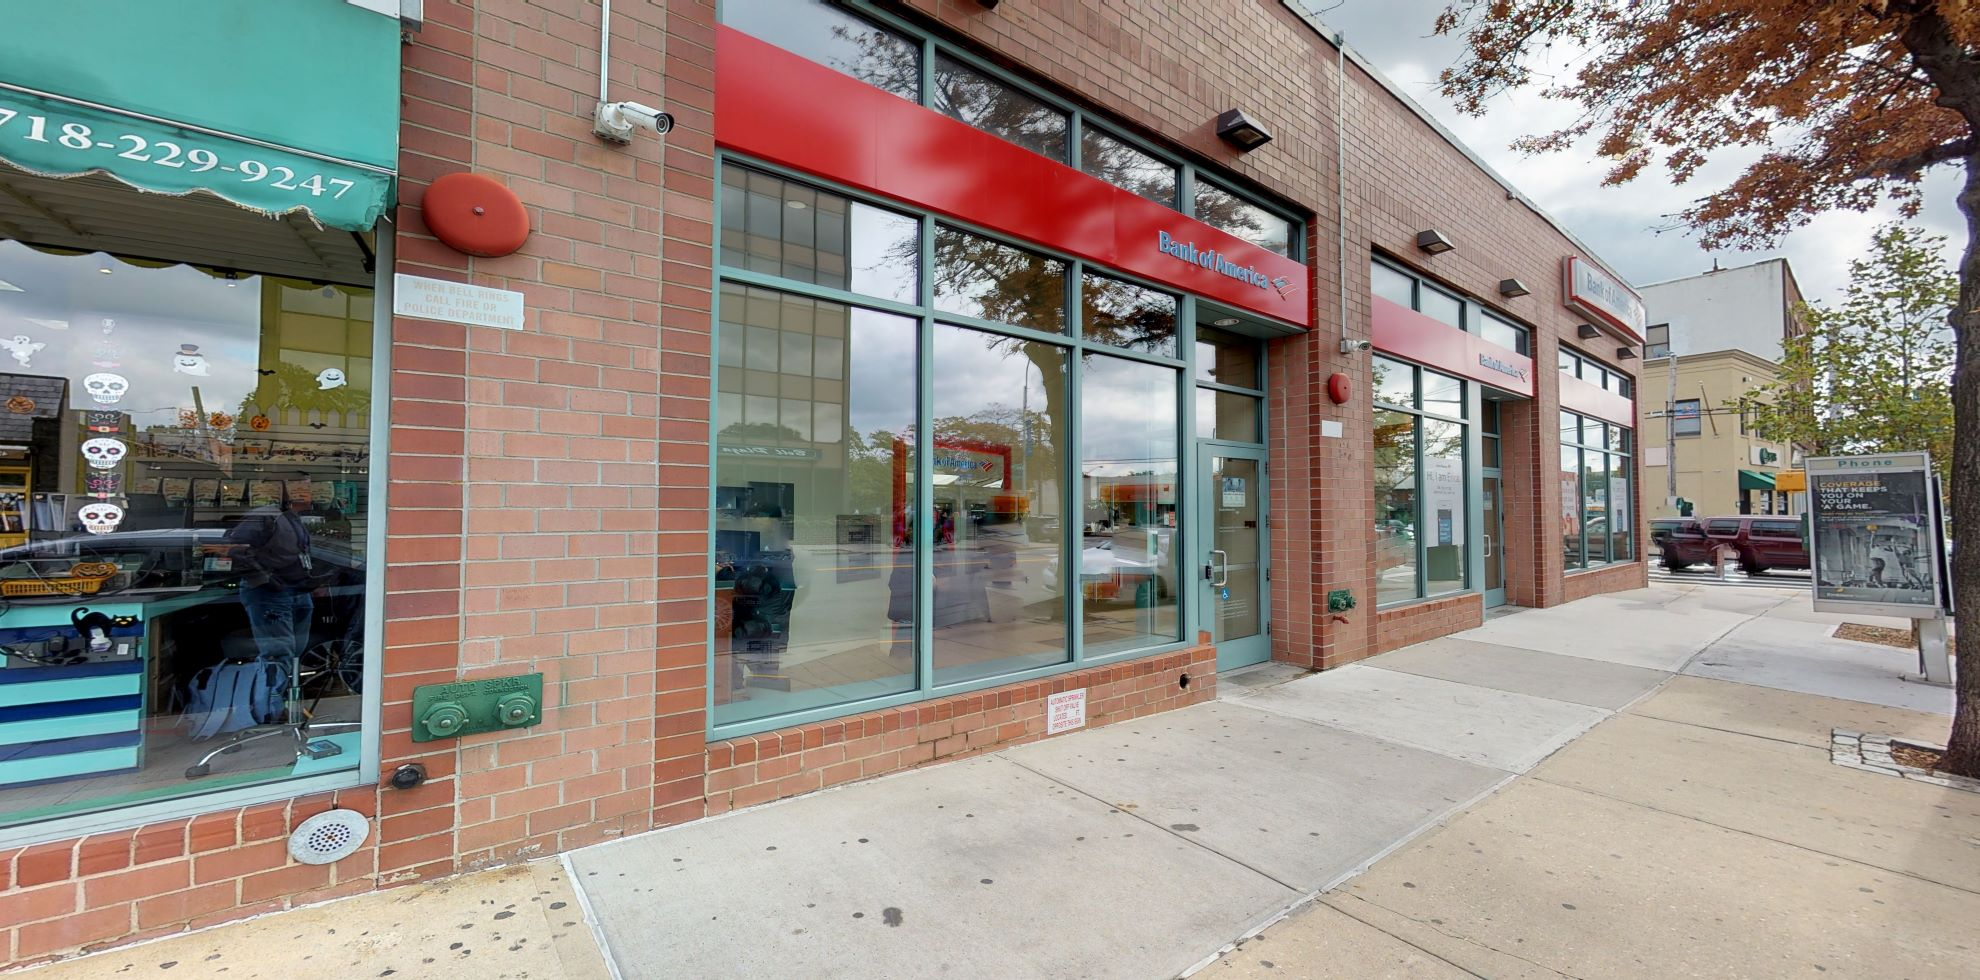 Bank of America financial center with walk-up ATM   4239 Bell Blvd, Bayside, NY 11361